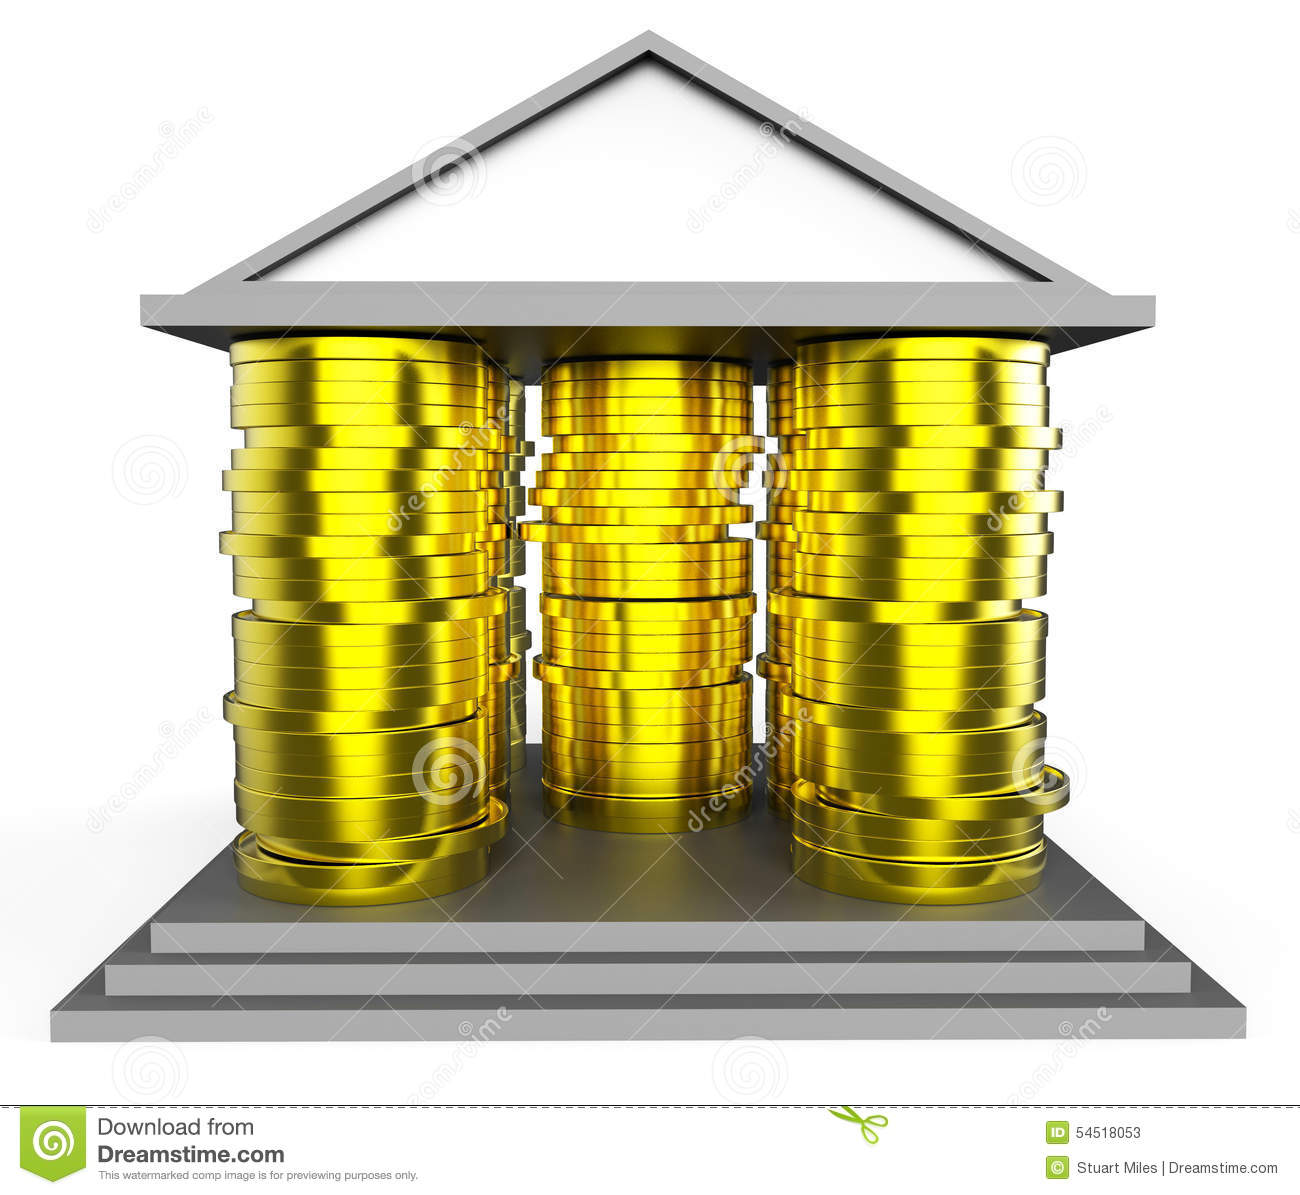 House mortgage represents borrow money and building stock for Borrowing money to build a house